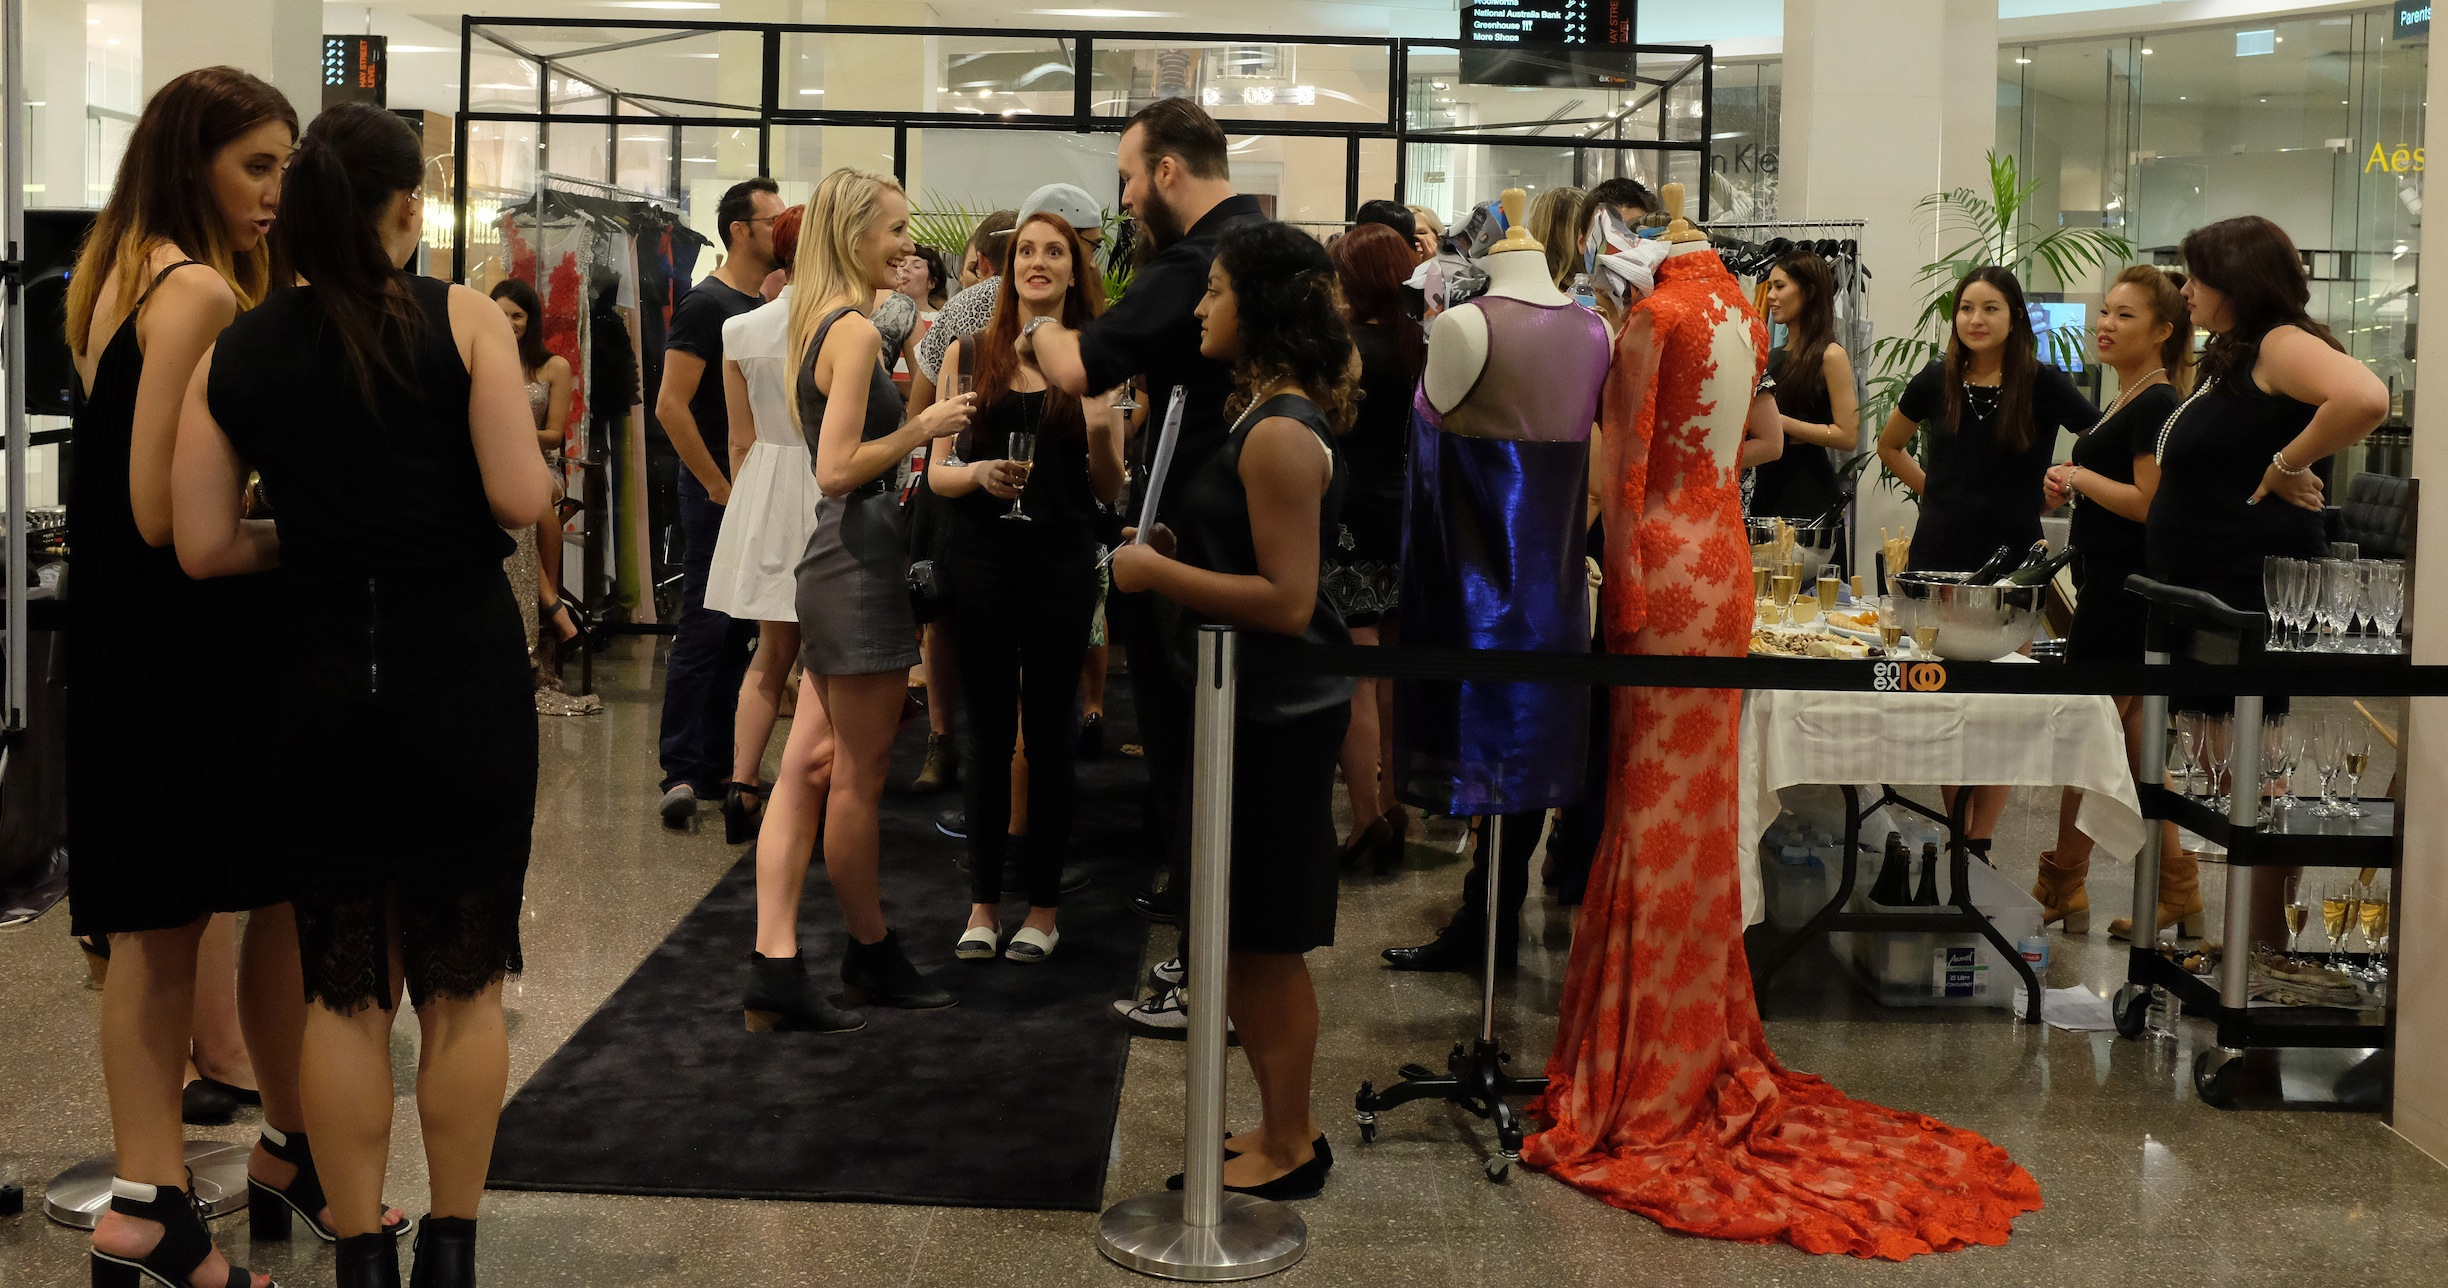 Festival of frocks, enex100, Hatch shop, Perth, Fashion, Ruth Tarvydas, Ange Lang, Zhivago, Garth Cook, Steph Audino, Jomay Cao, Betty Tran, VIP invite, fashion, dress, couture, gown, evening dress, jewellery, jewelry, shoes, heels, champagne, floral, sequin, sparkle, jewels, makeup, Napoleon Perdis, Nezuki, Perth blogger, Perth fashion, Australian Designer, Vanessa Collars